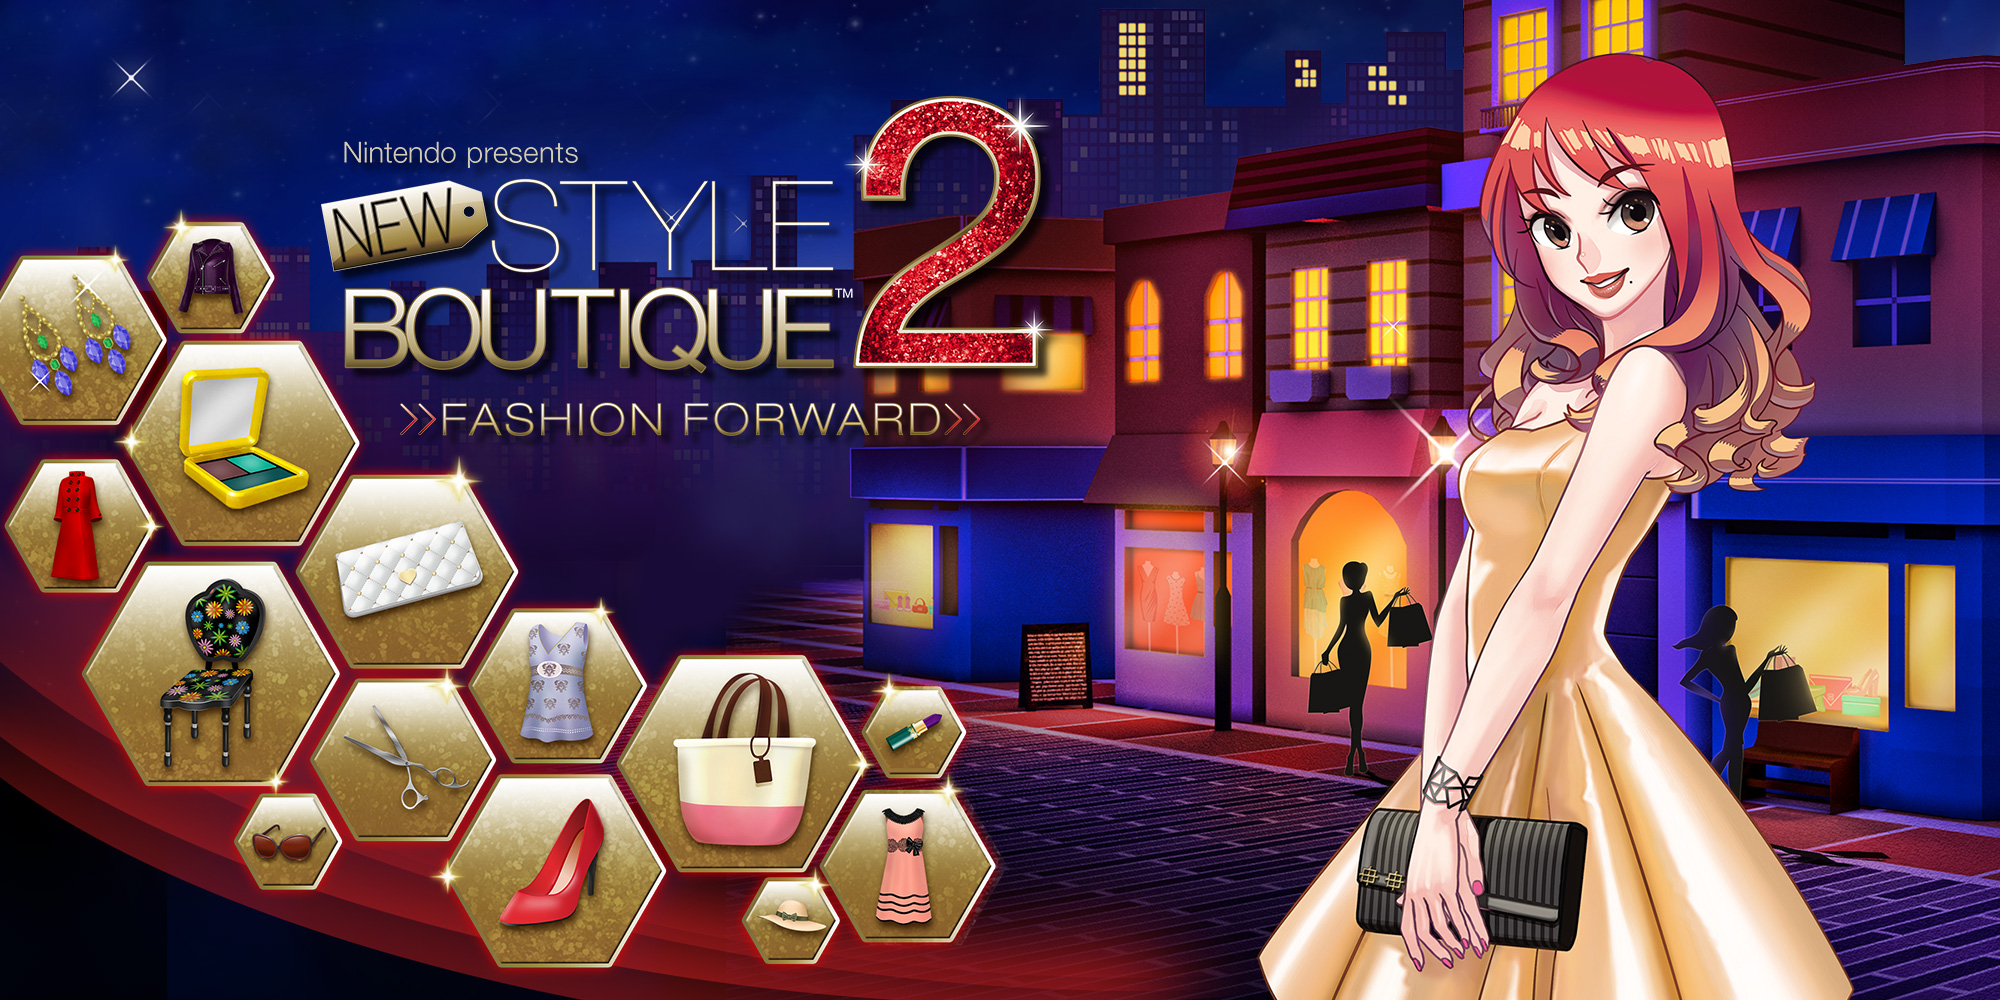 Nintendo presenta: New Style Boutique 2 - Sempre più fashion!